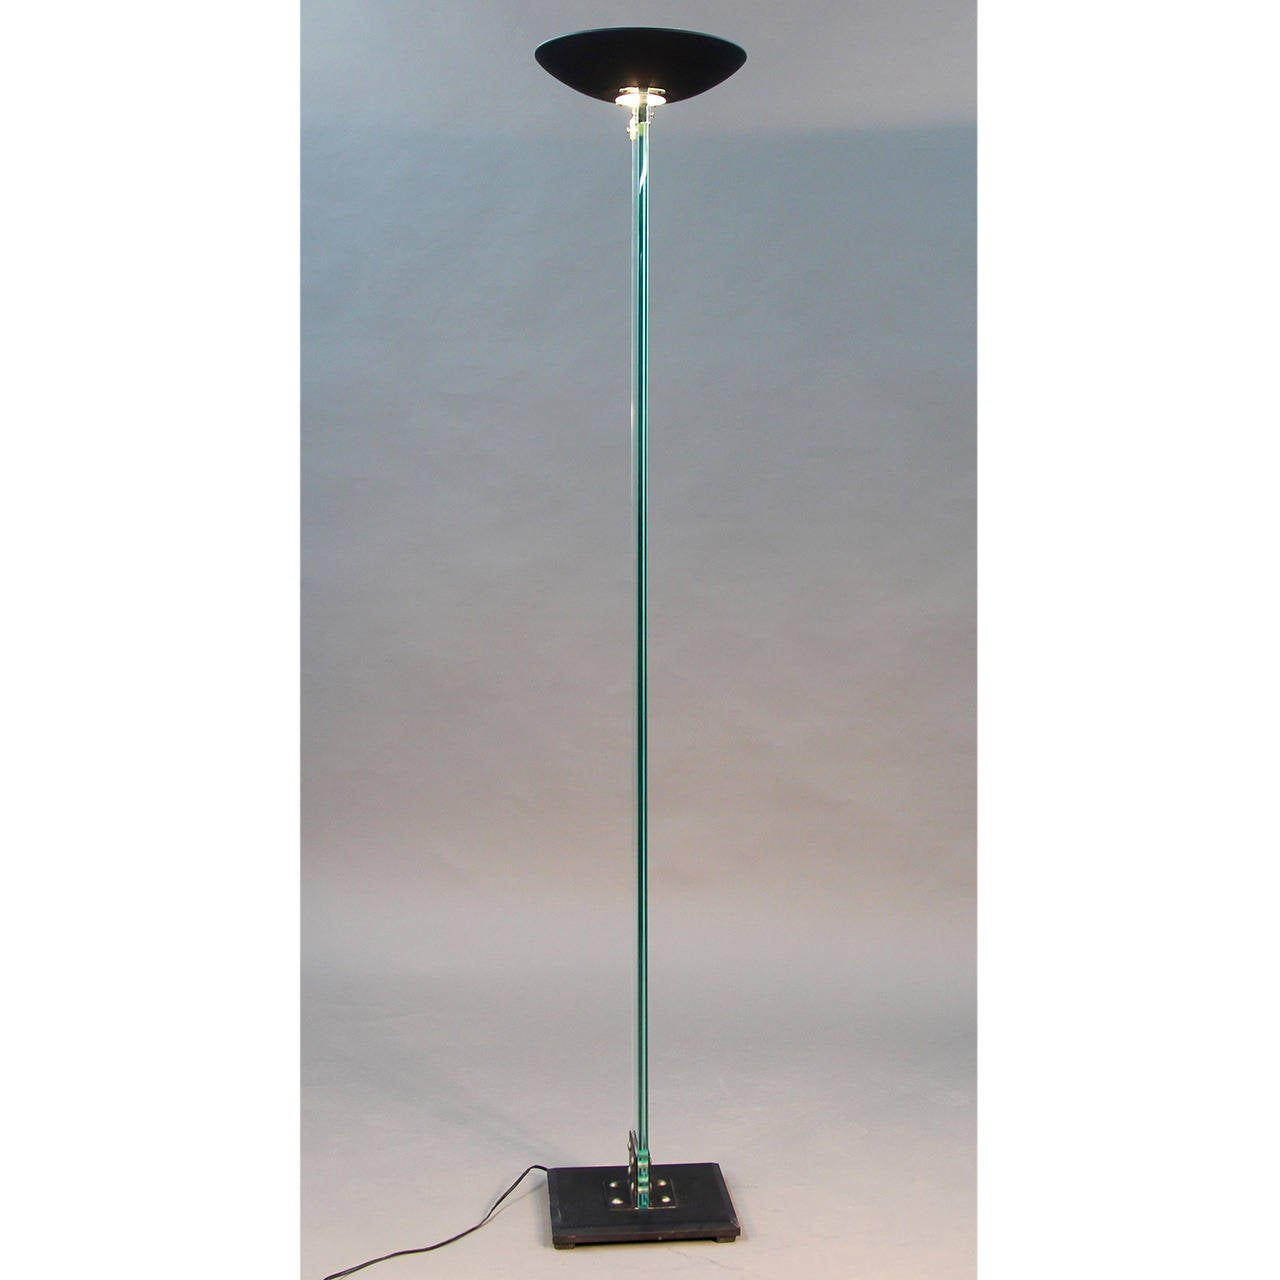 Art deco silver and stacked crystal ball floor lamp at 1stdibs - Fontana Arte Style Glass And Brass Floor Lamp 2